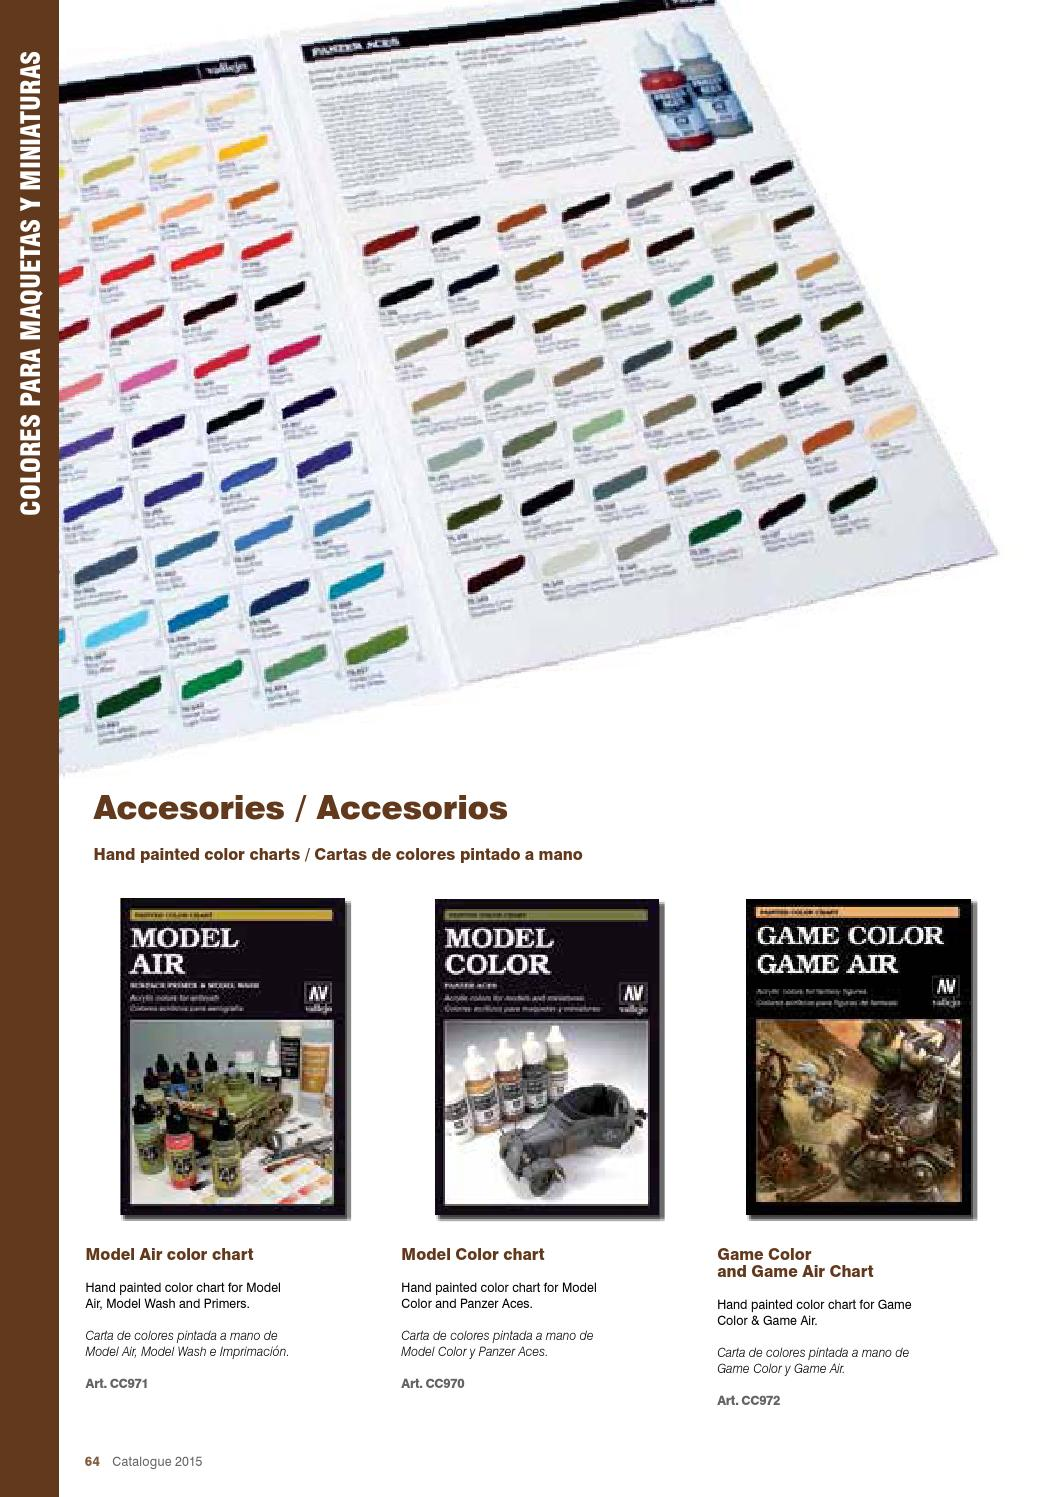 Game color chart - Game Color Chart 15